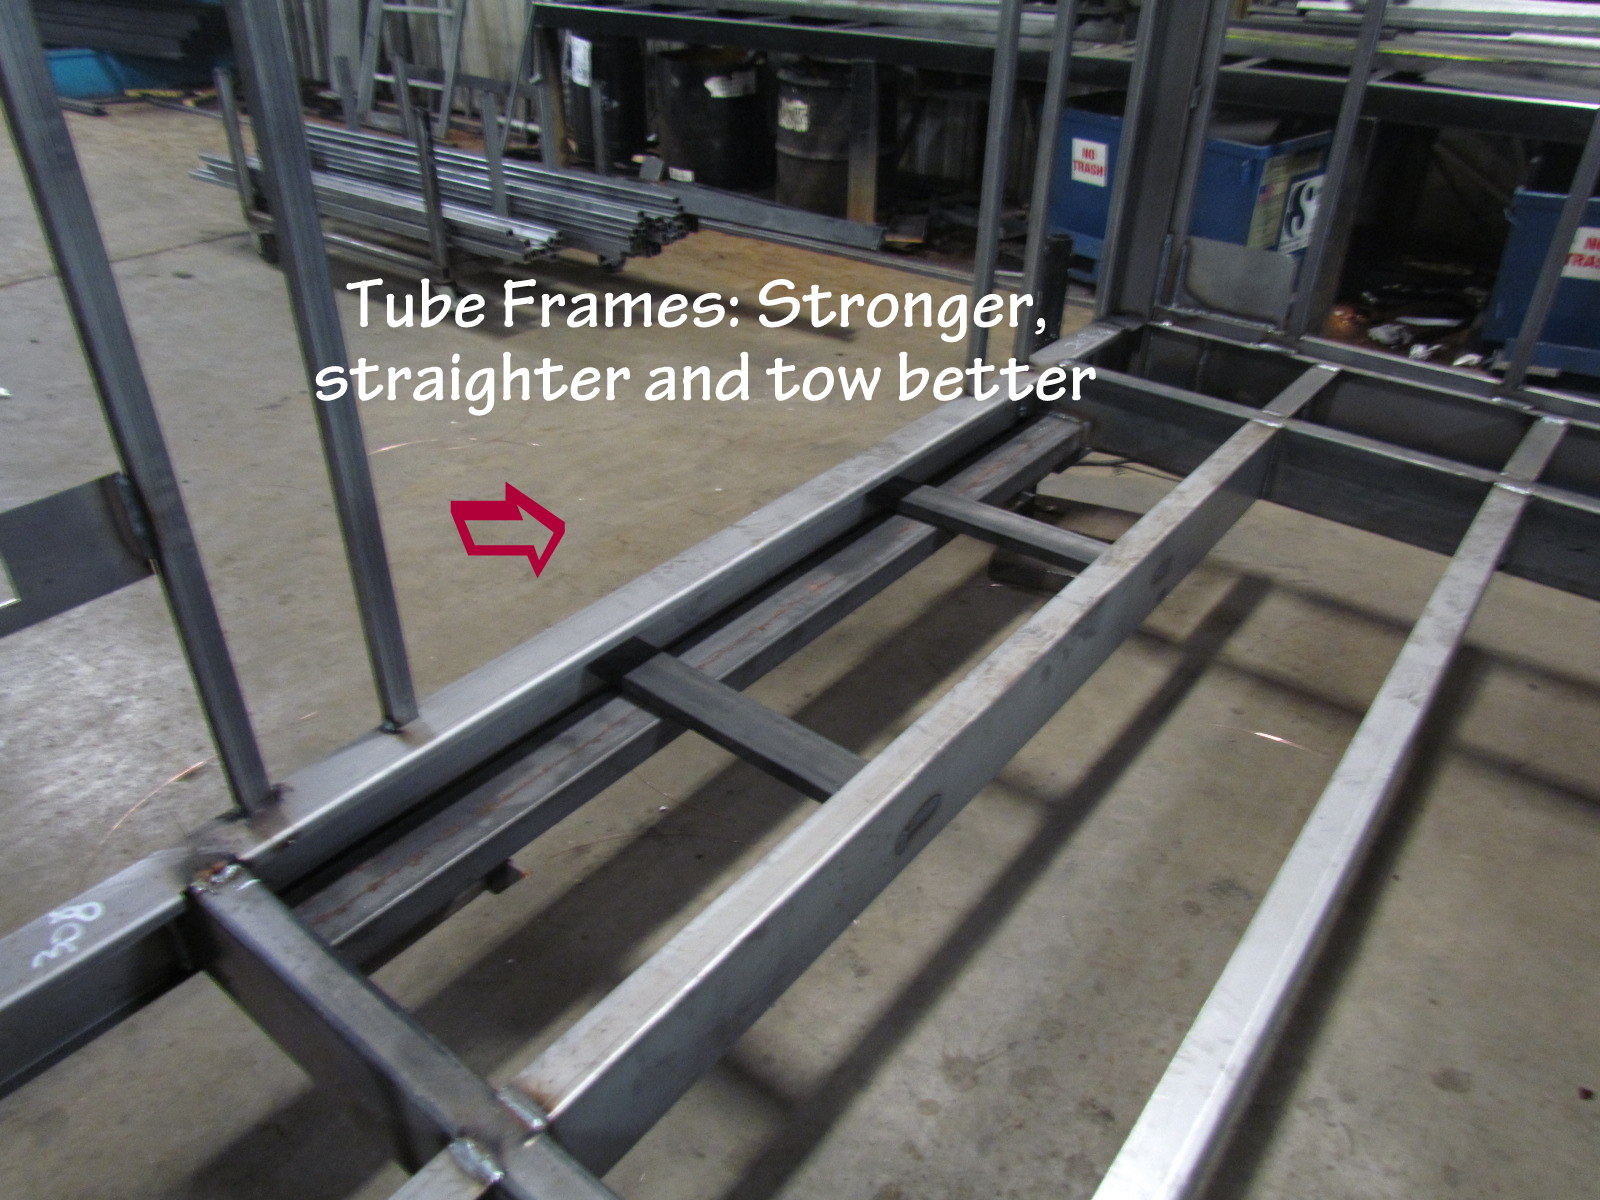 Tube Frames: Tube main frames that are stronger, straighter and tow better